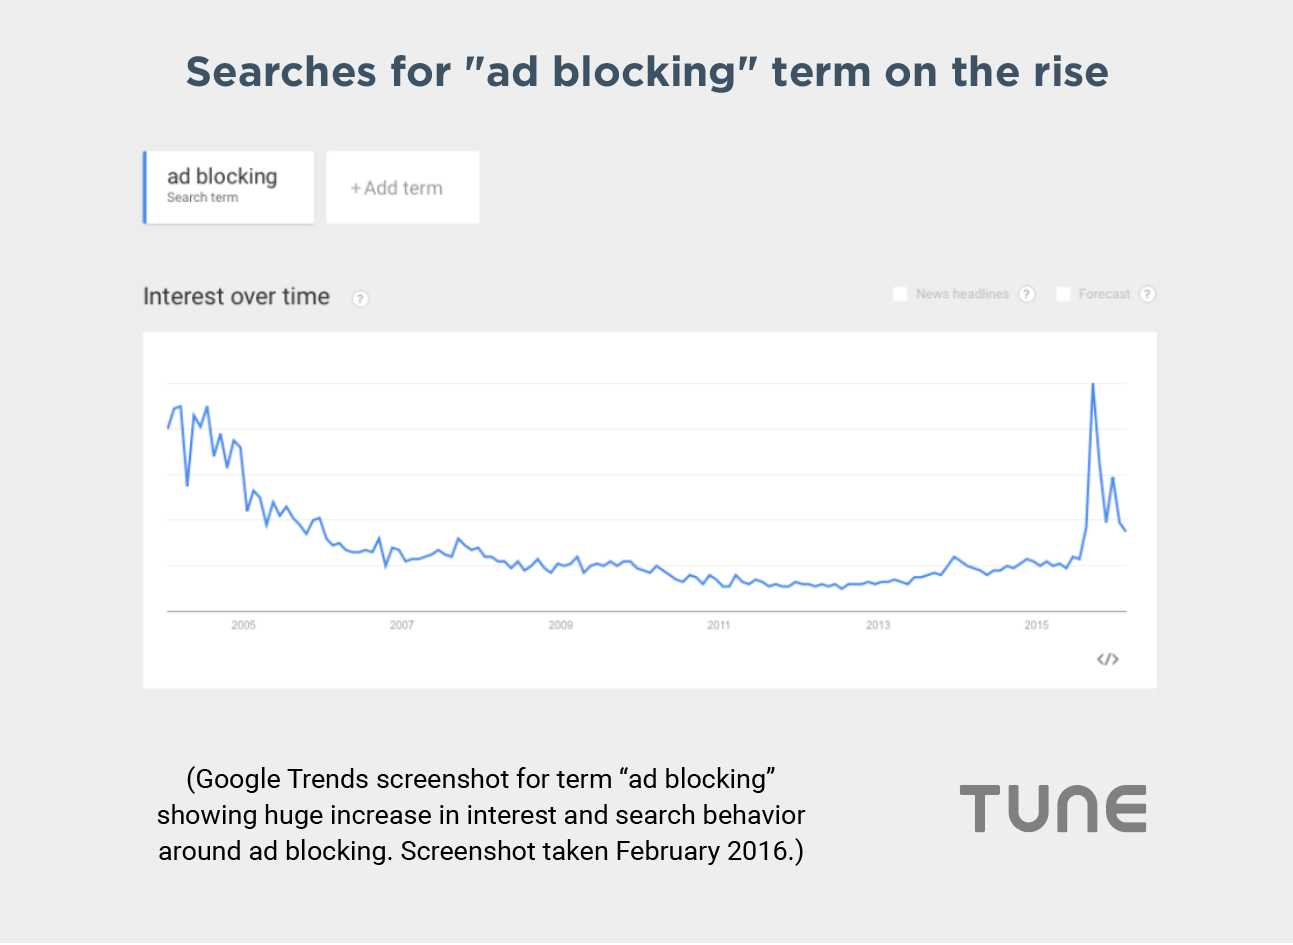 Searcyhes for ad blocking